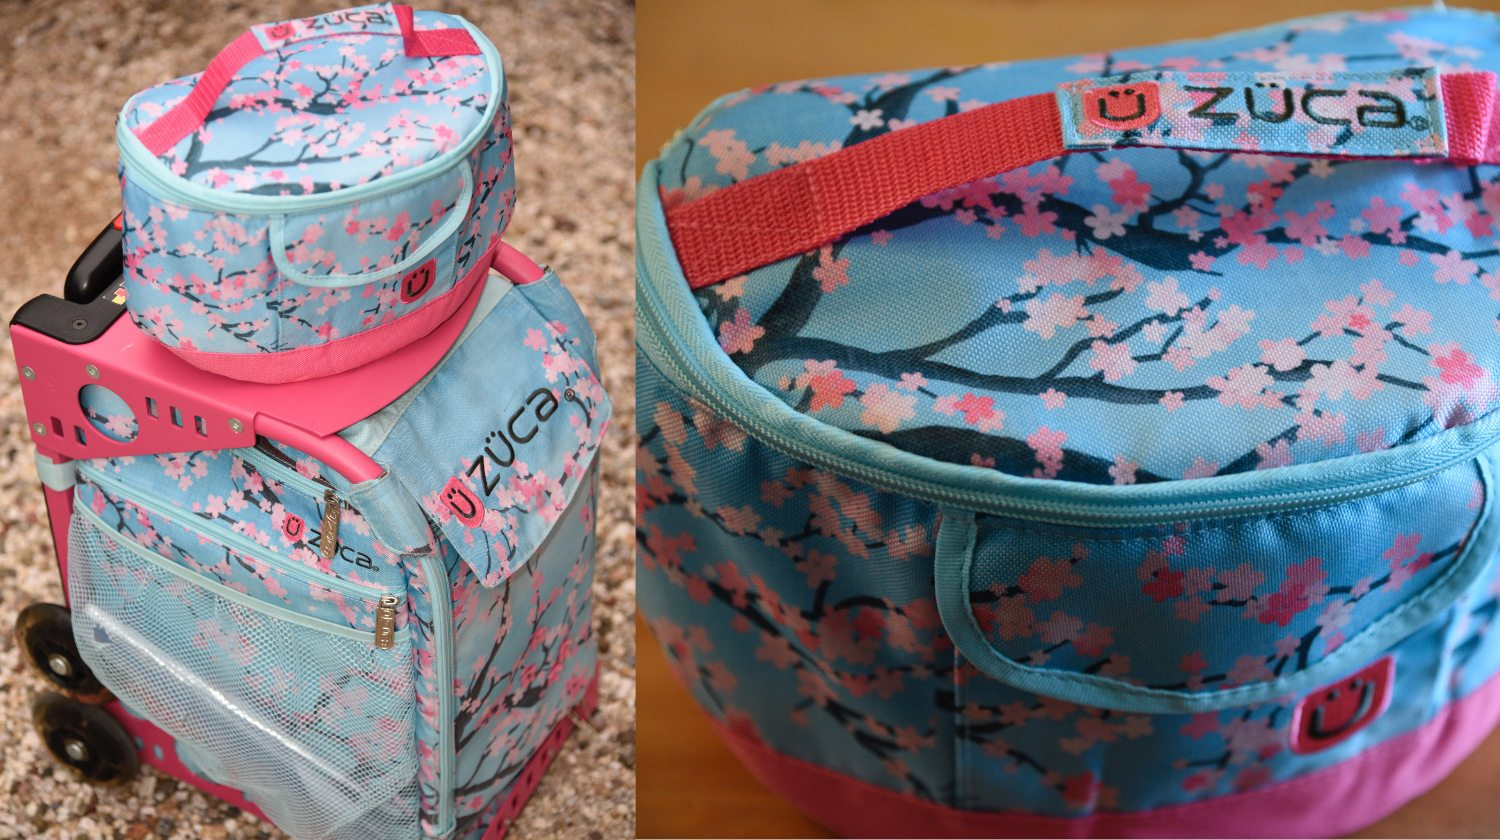 ZUCA Hanami backpack and lunchbox